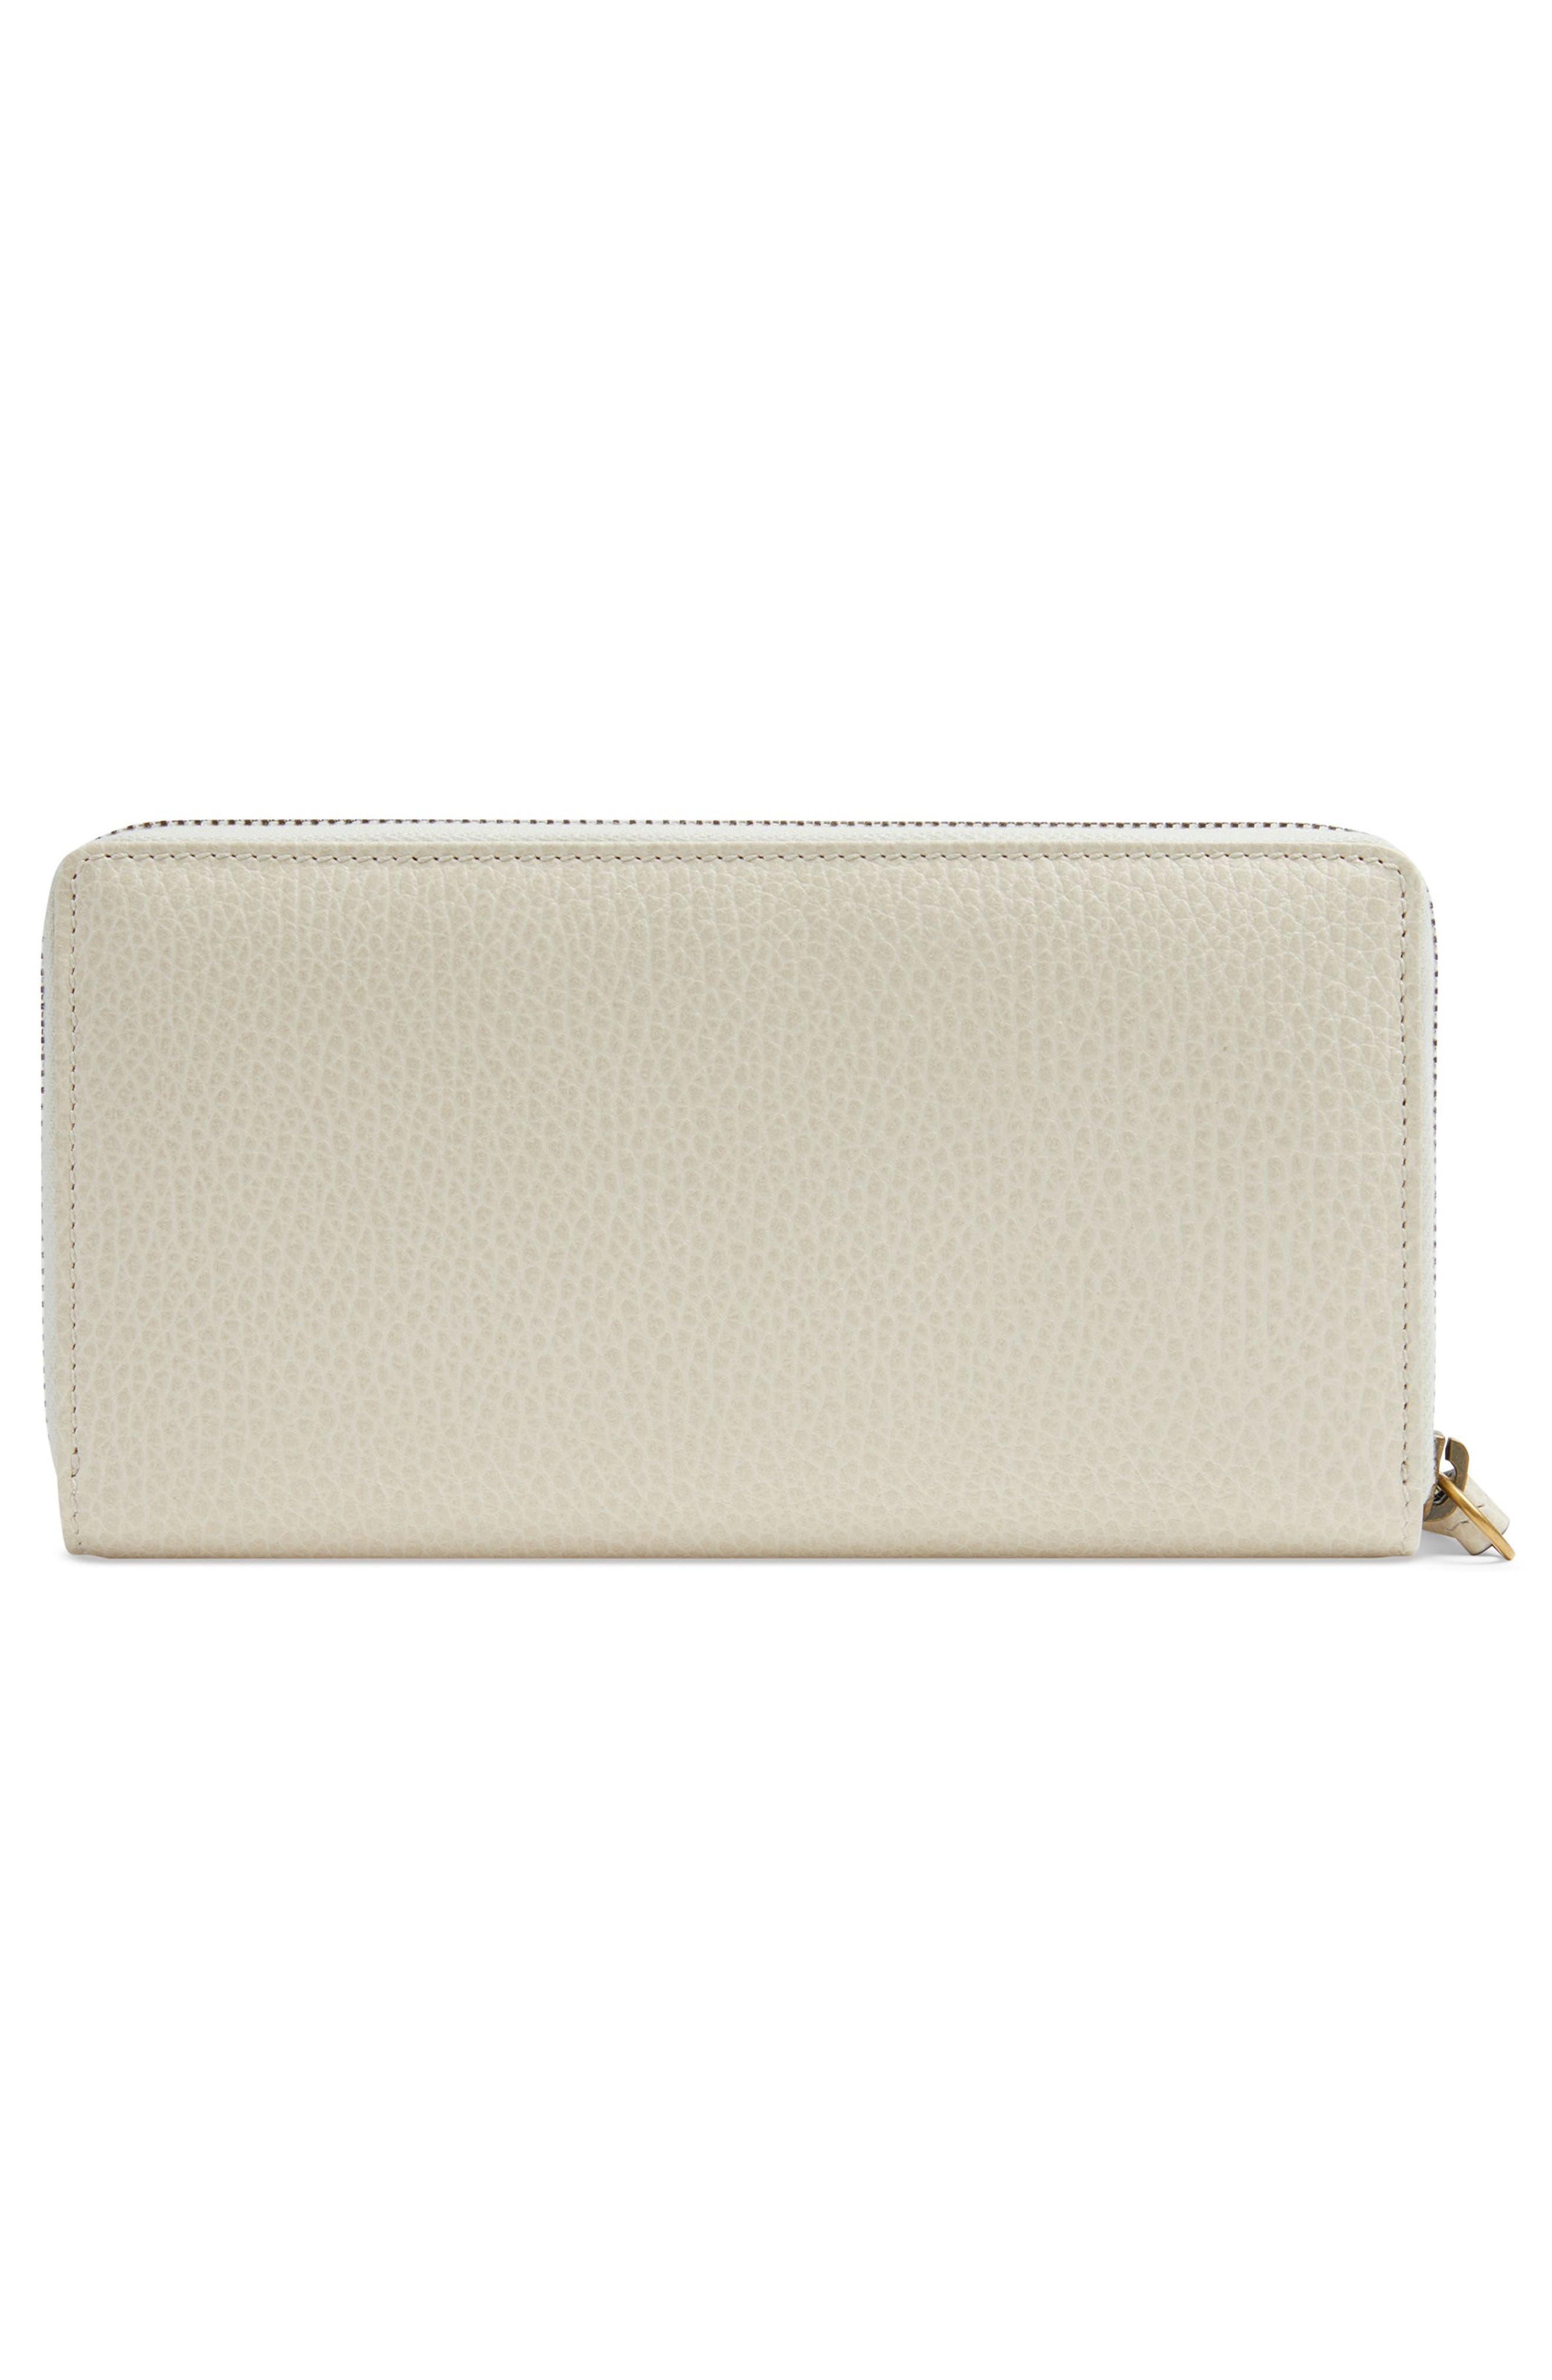 Linea Fioccino Leather Continental Wallet,                             Alternate thumbnail 3, color,                             MYSTIC WHITE/ PINK/ CRYSTAL